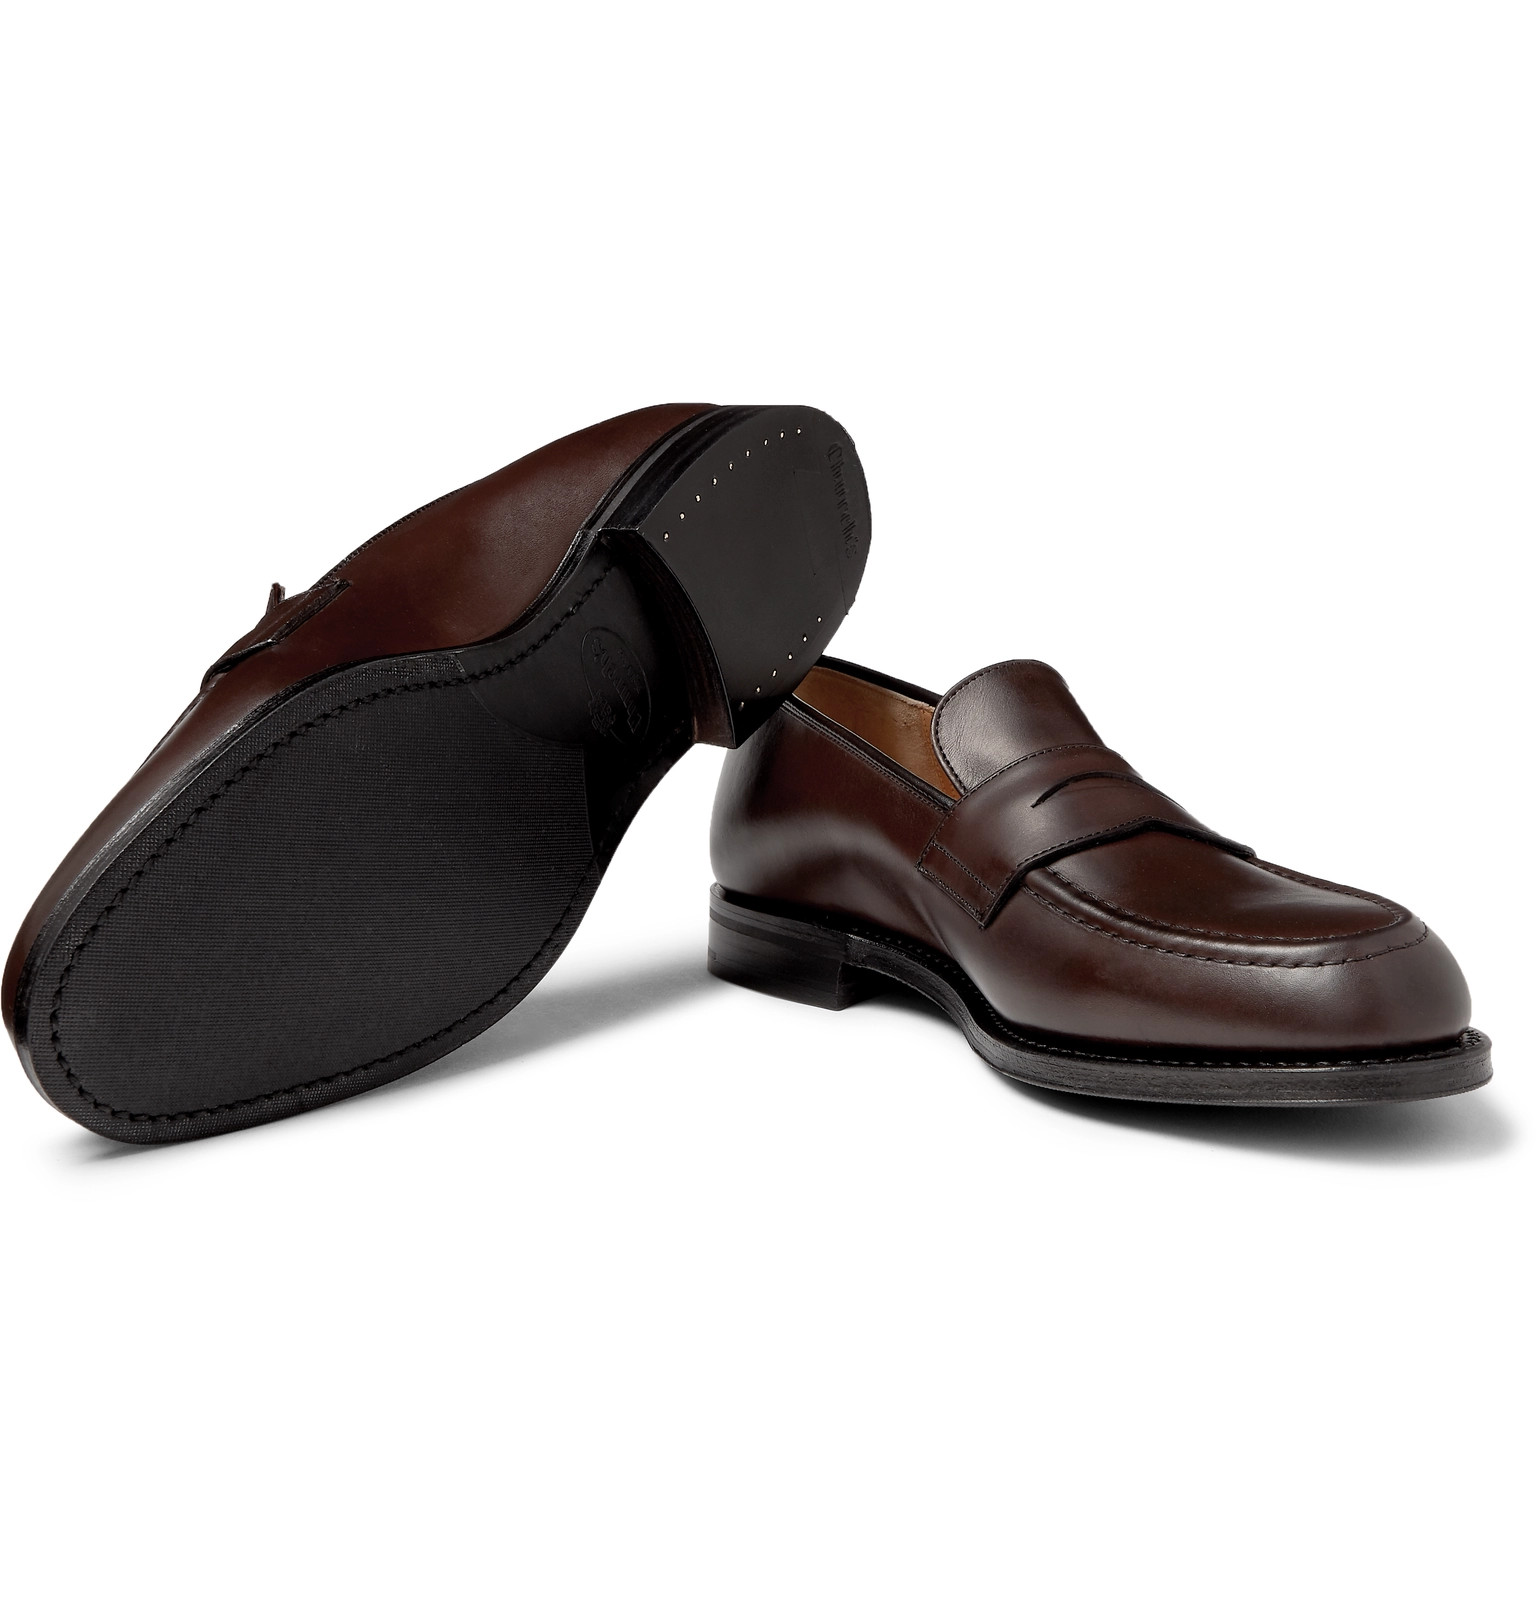 9355494d926e Church s - Netton Polished-Leather Penny Loafers